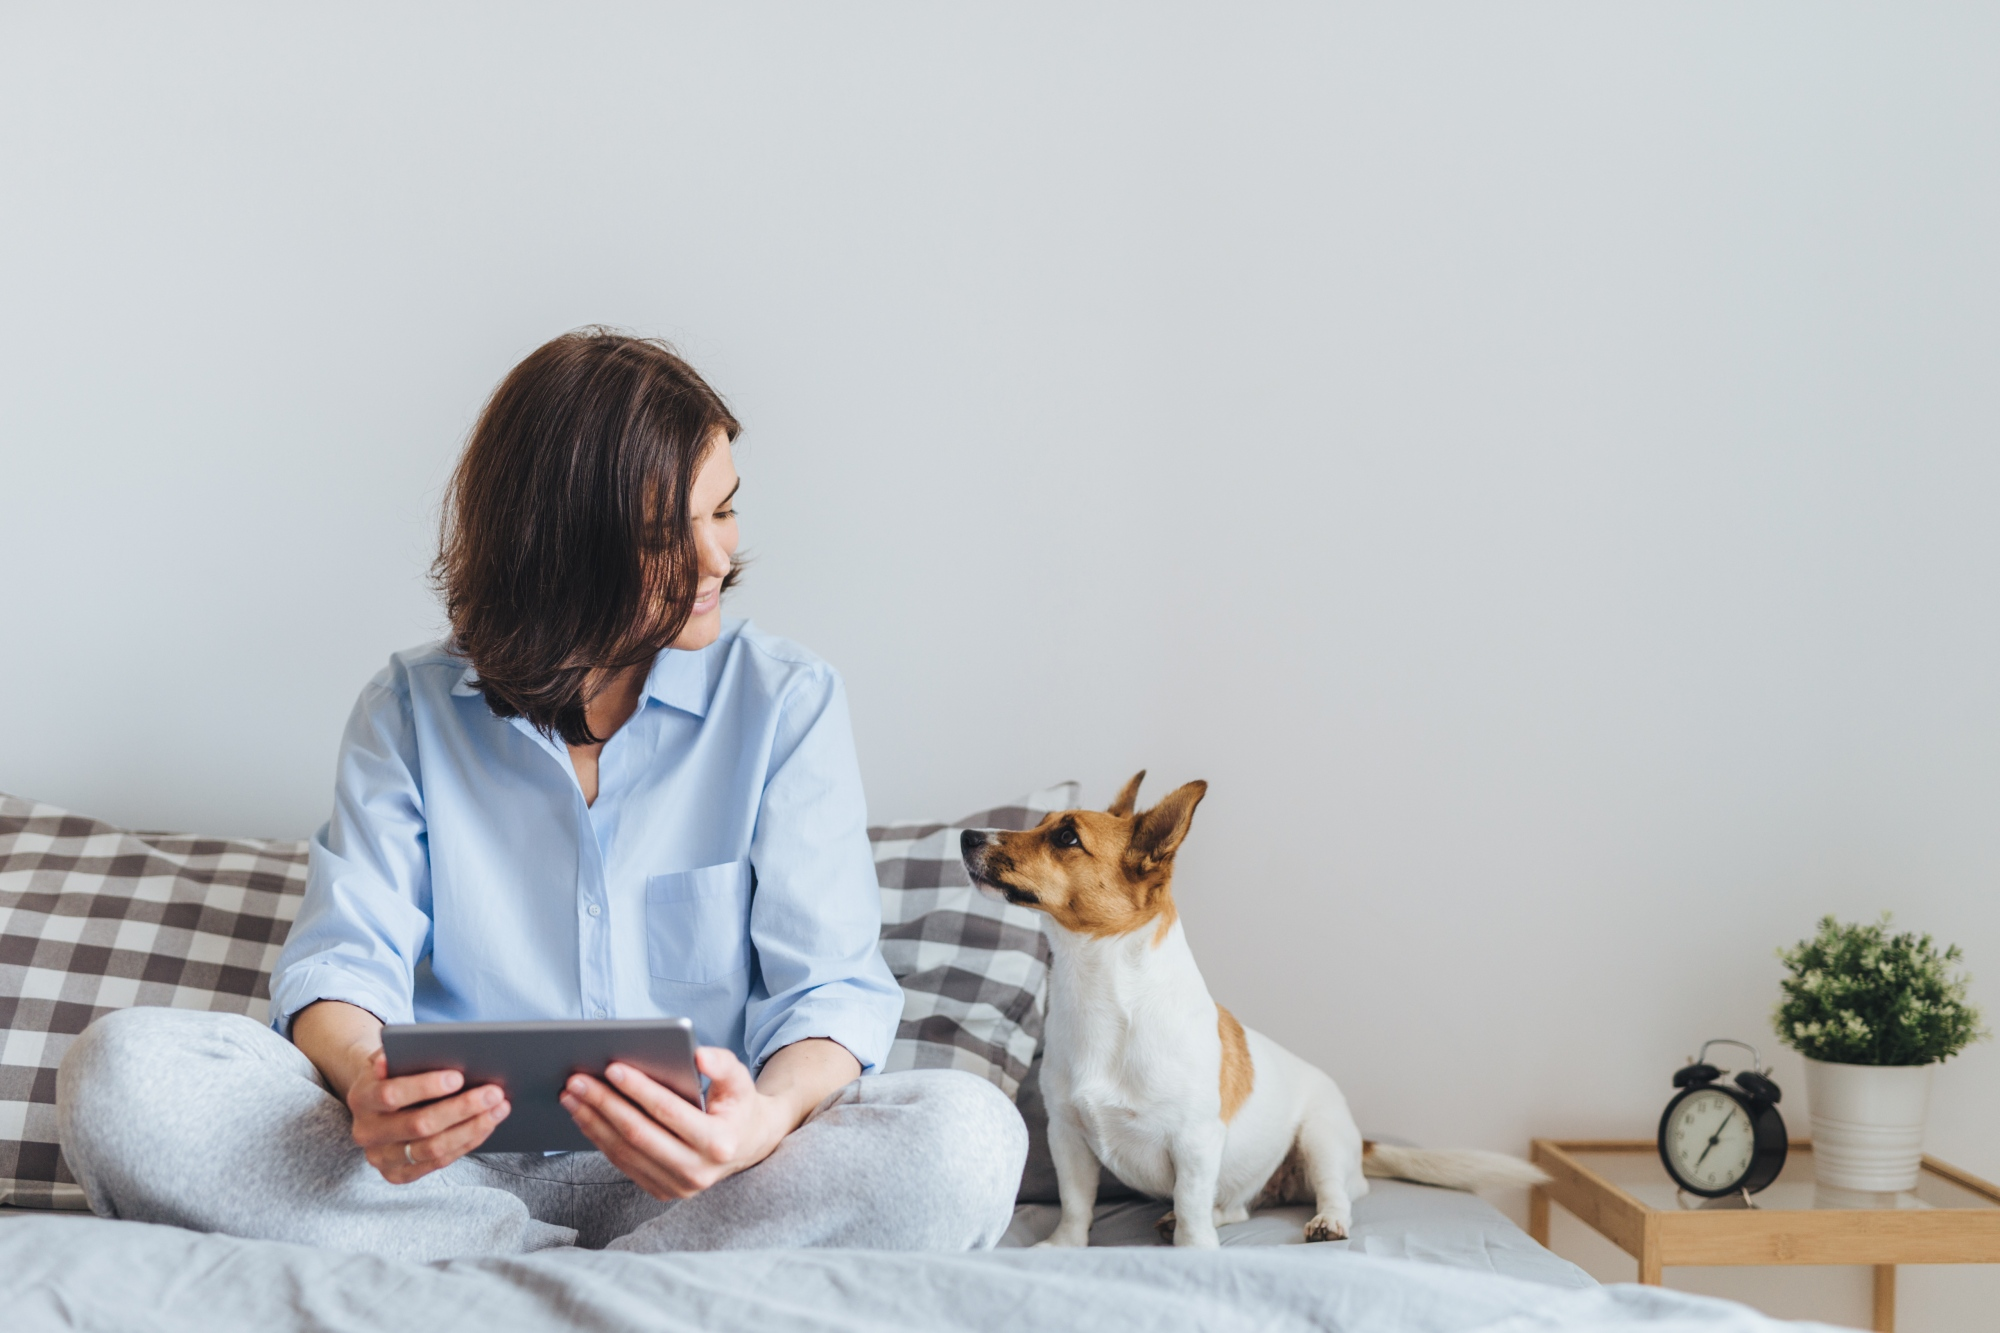 Woman with tablet, sitting on bed with dog